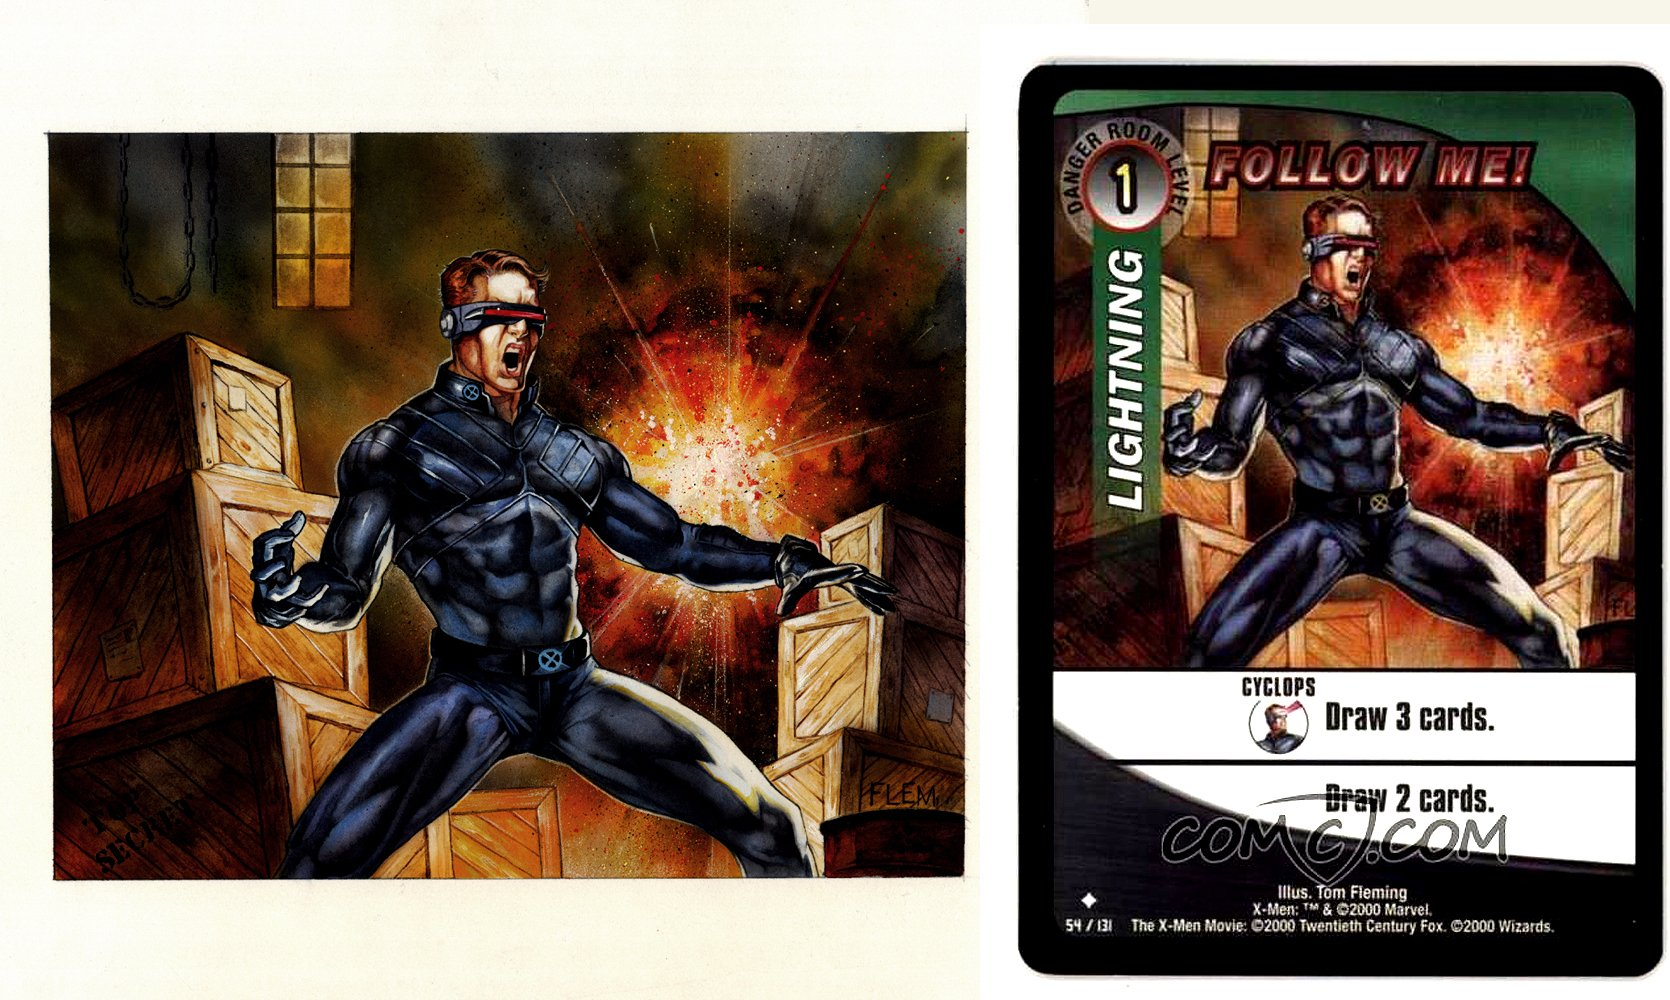 X-Men CYCLOPS Published Painting,Card #54, Titled: 'FOLLOW ME!'